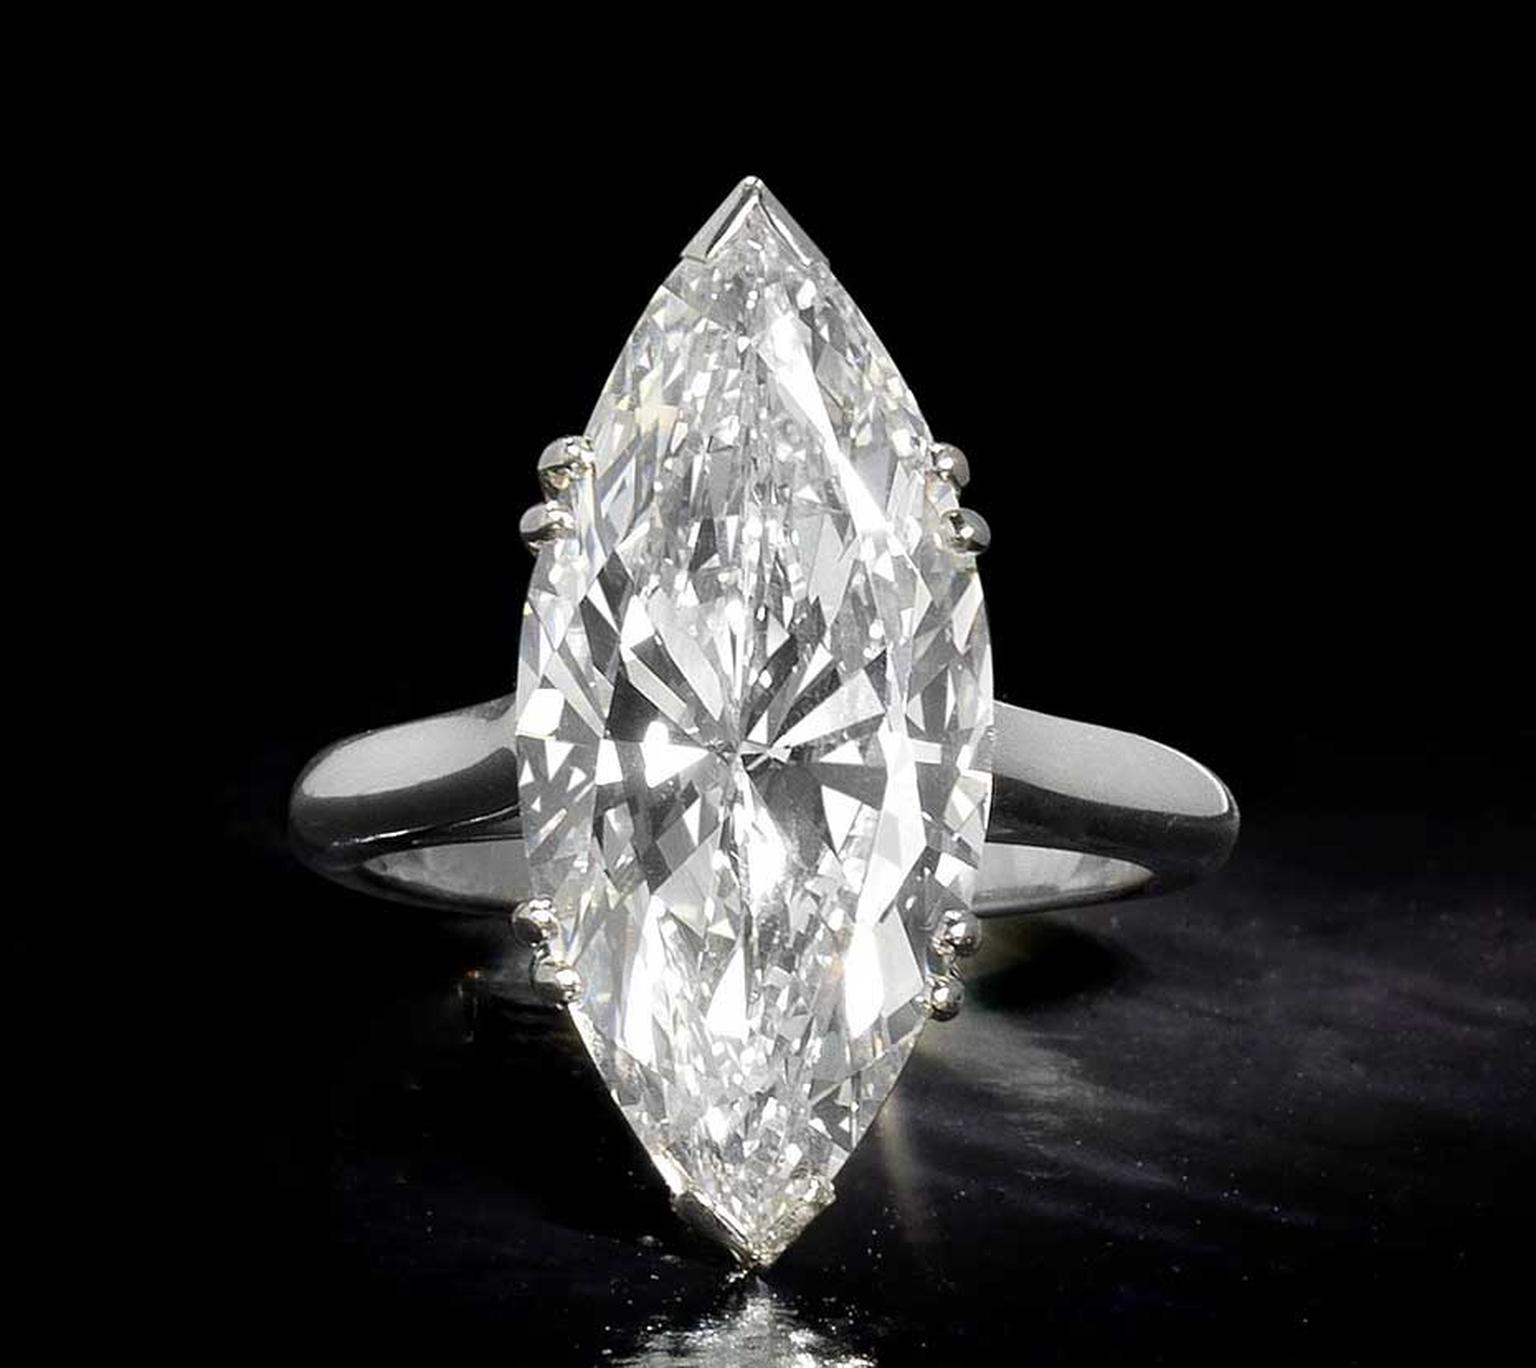 Lot 193, an 8.97ct diamond ring by Piaget (estimate: £250,000-£350,000)